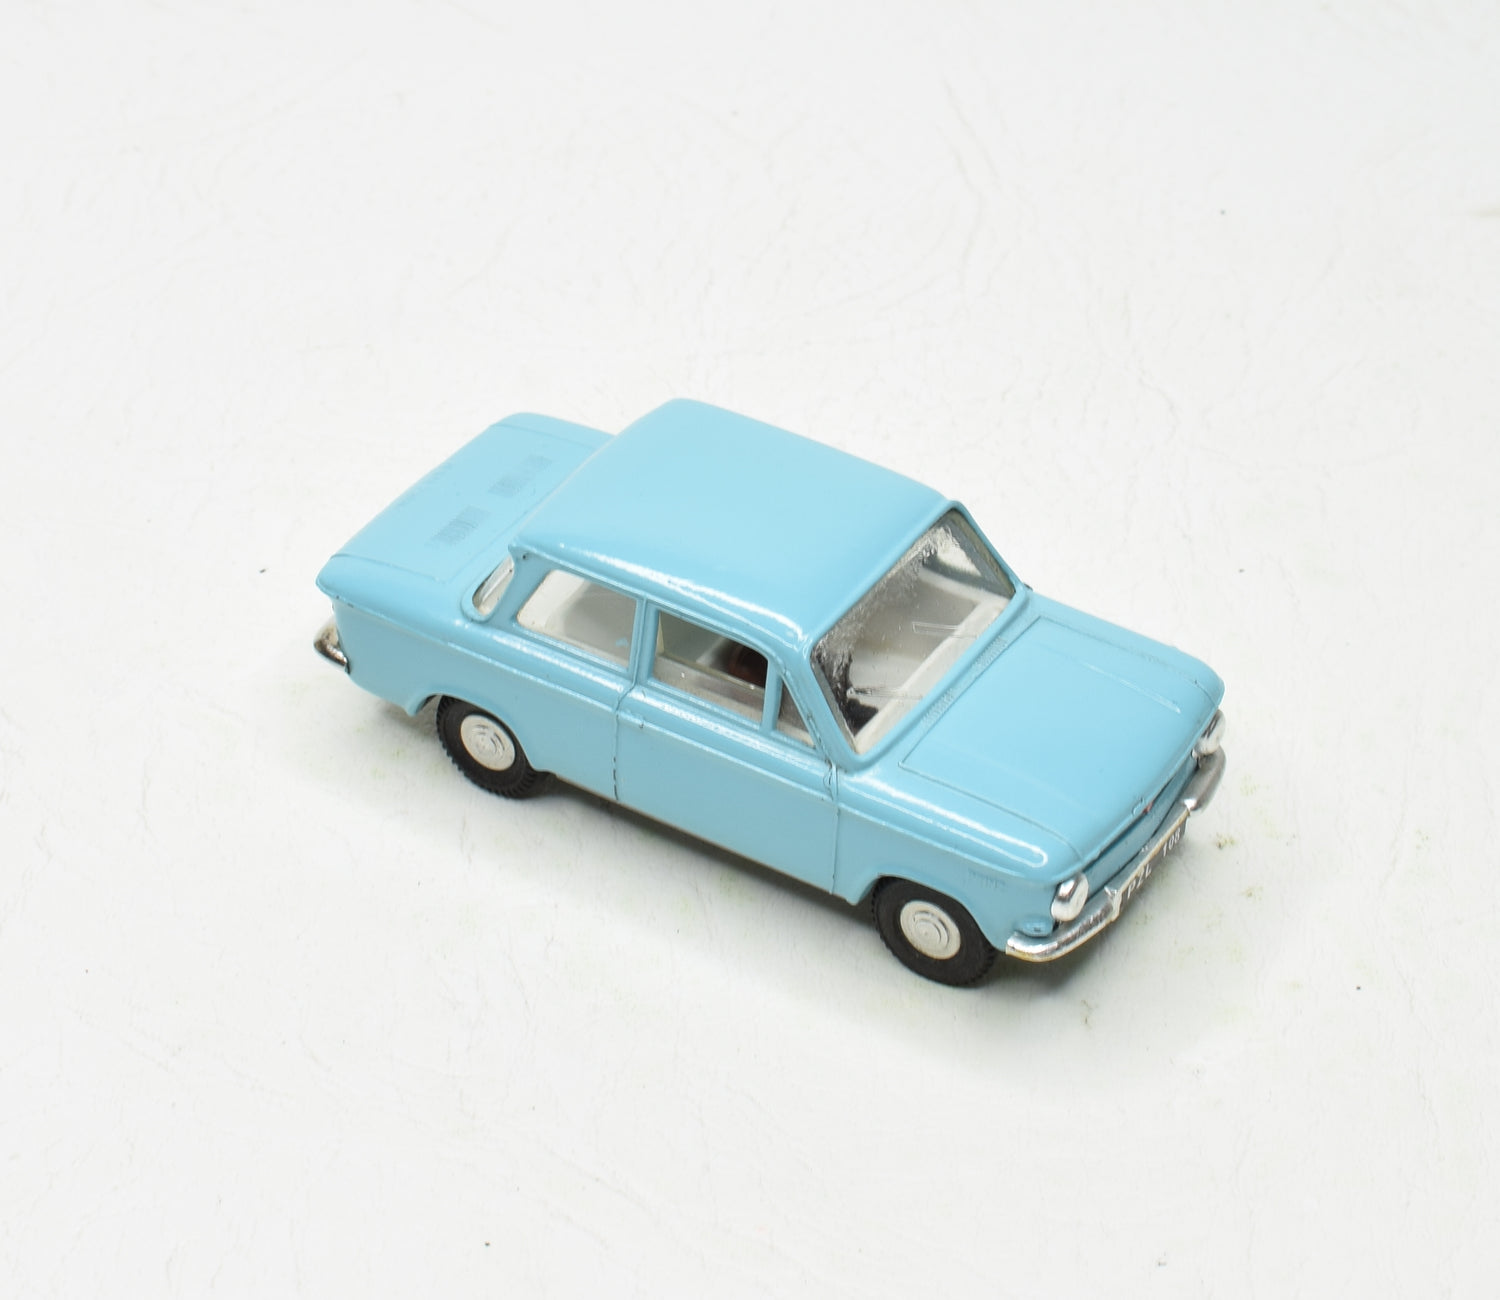 Spot-on 193 NSU Prinz Near Mint/no box 'Carlton' Collection